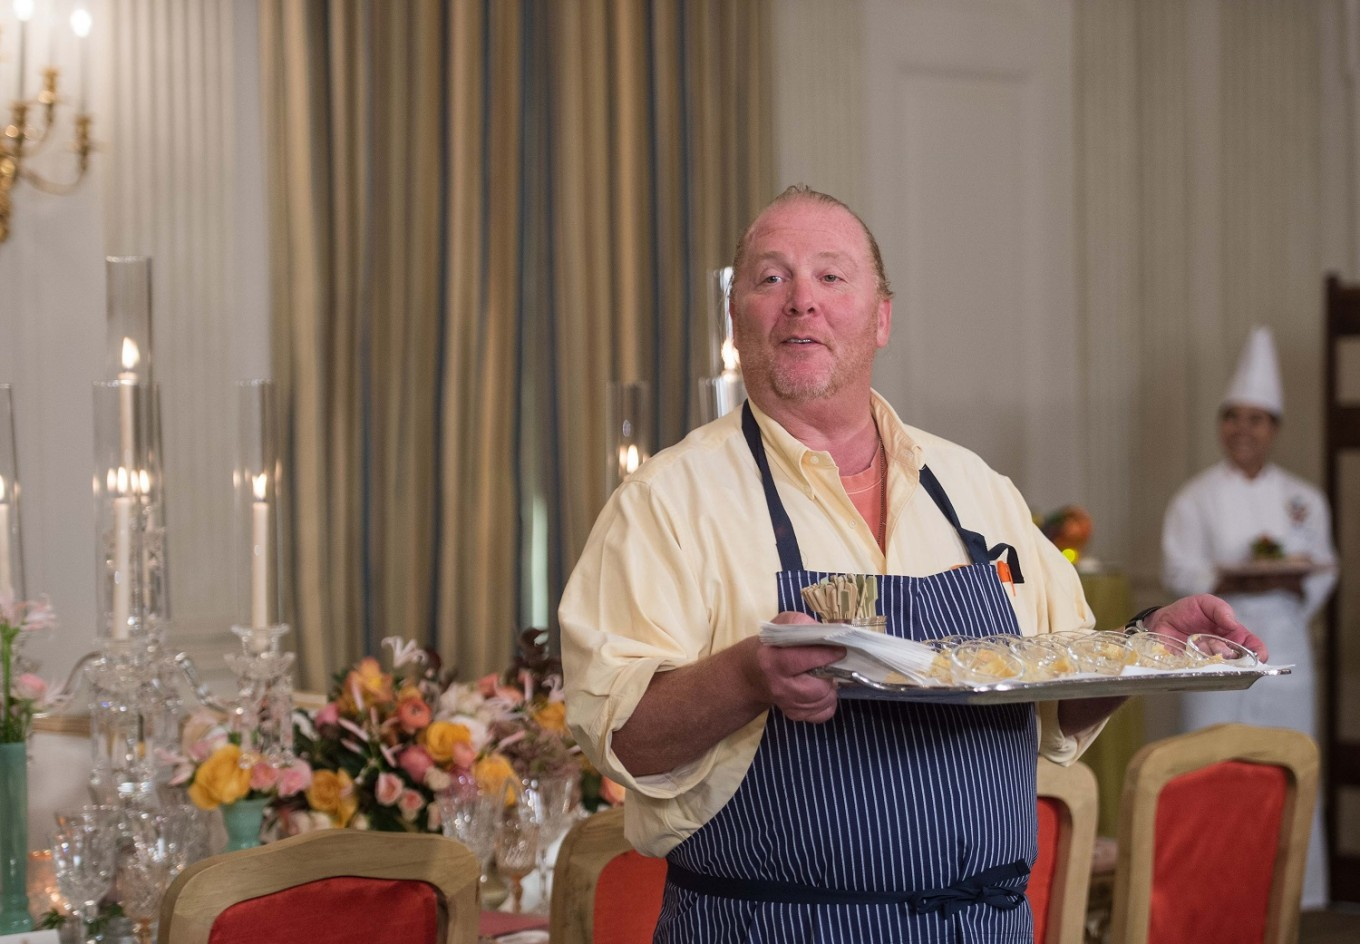 Chef Mario Batali pleads not guilty to sex assault charge